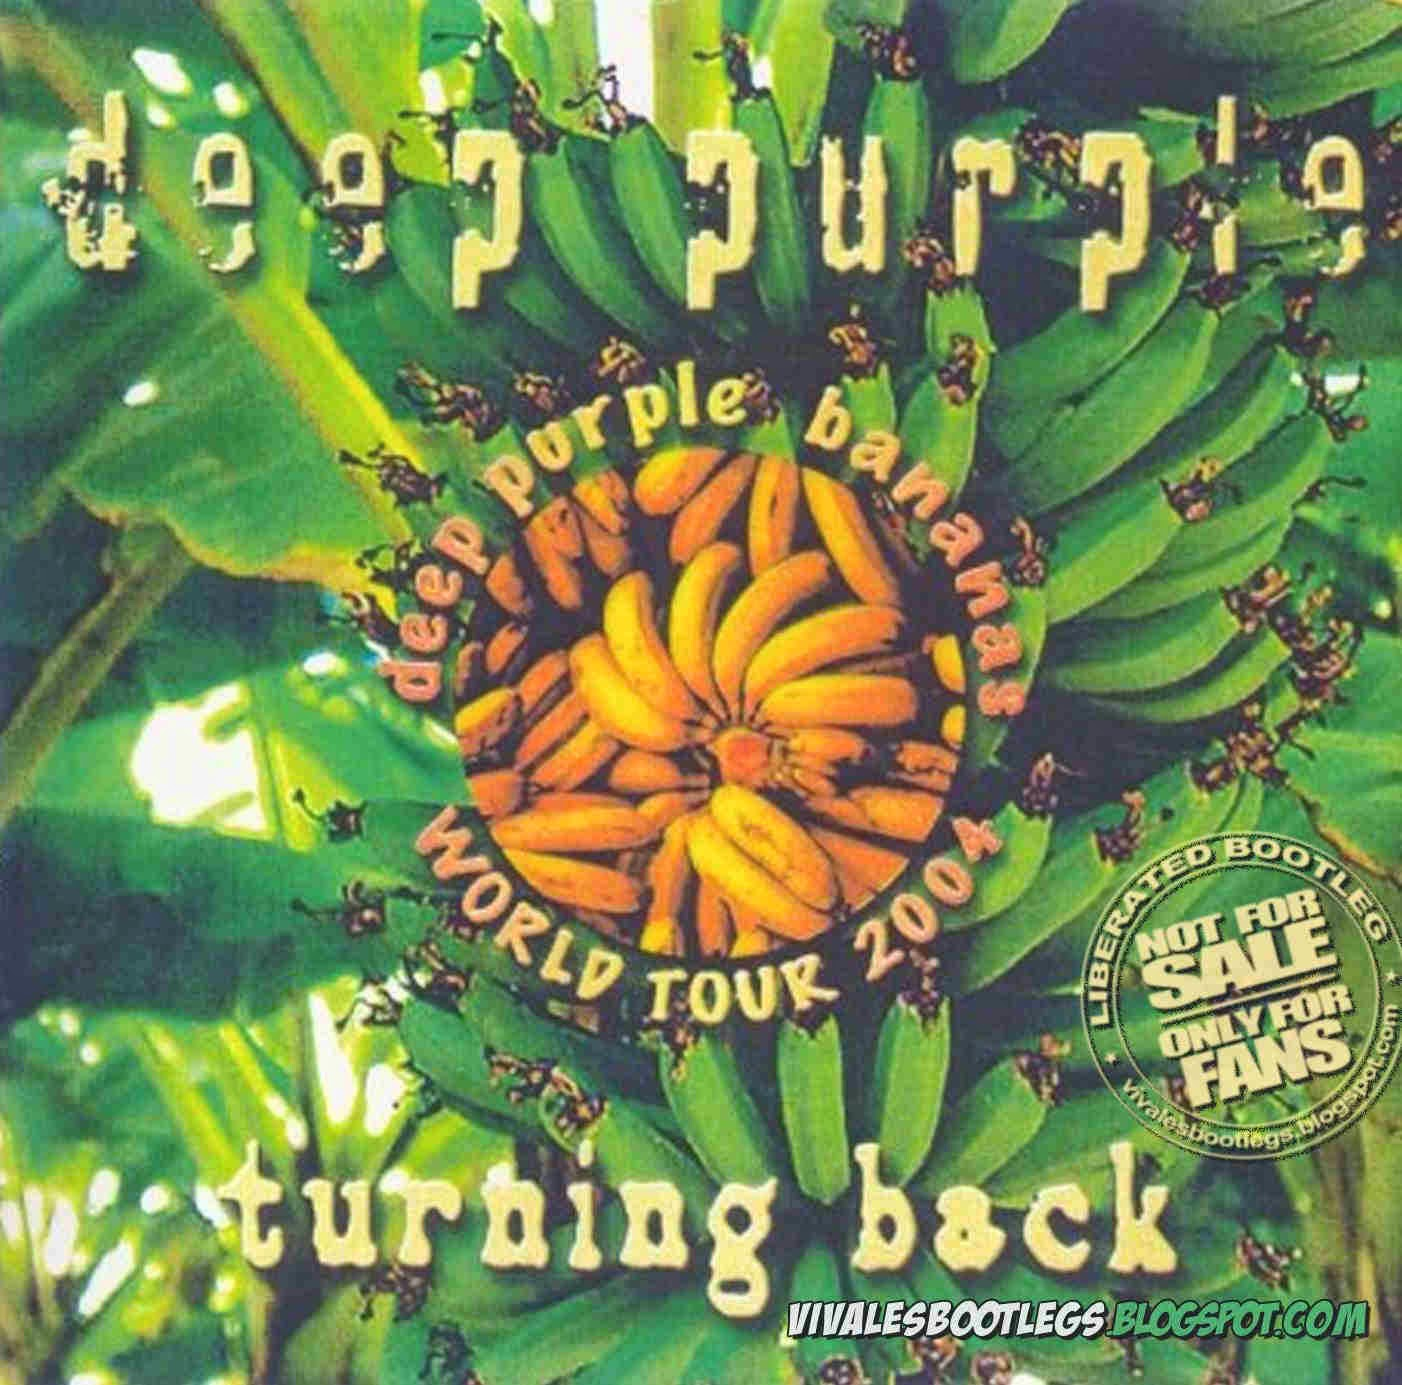 deep purple turning back front